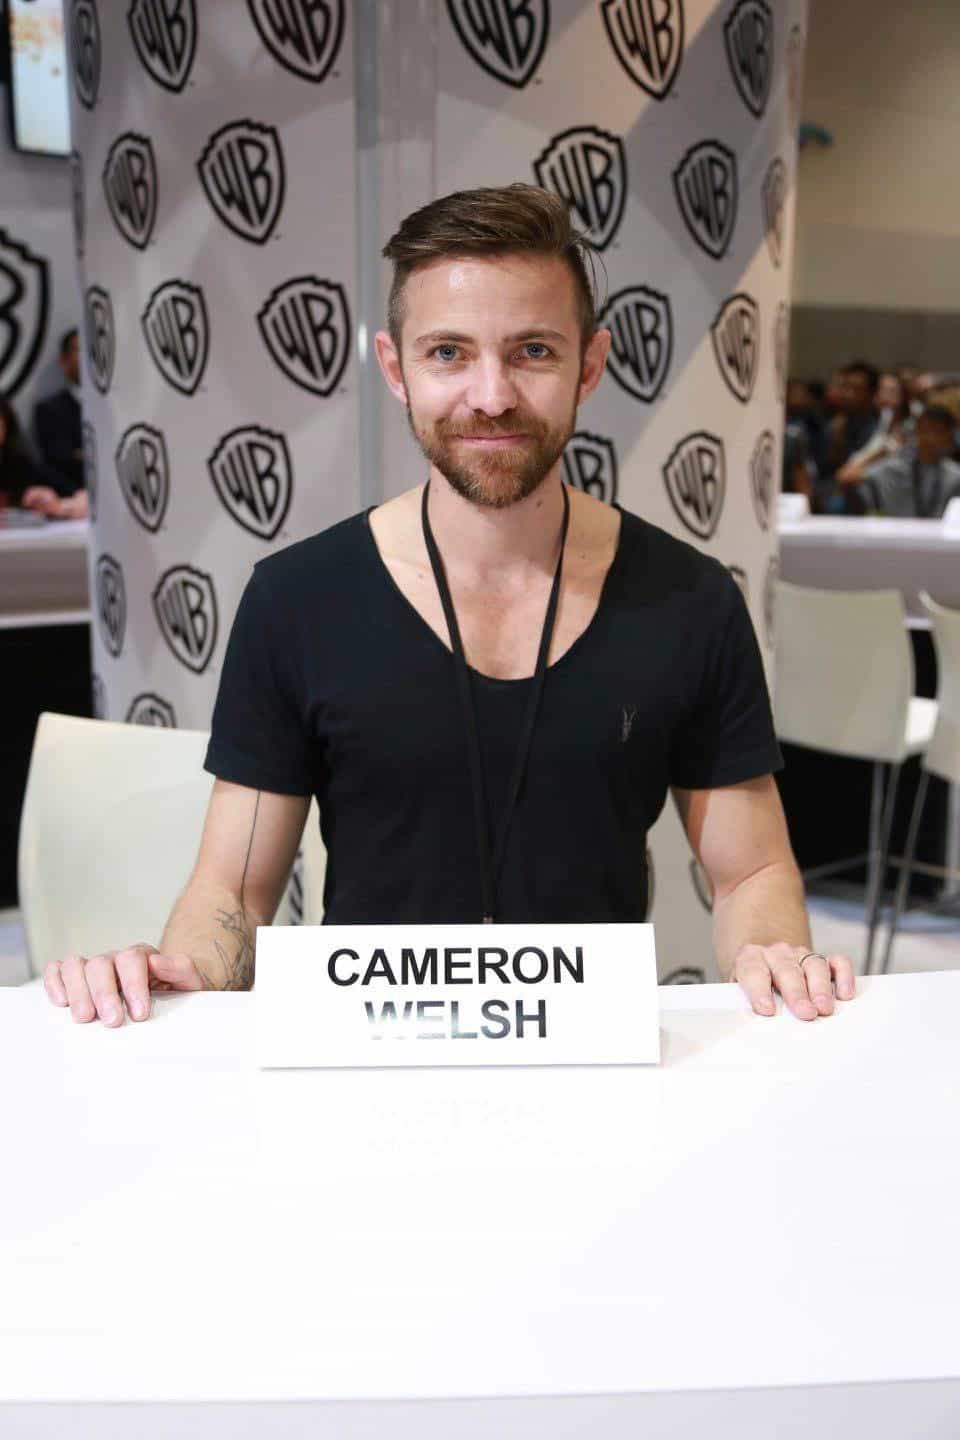 KRYPTON executive producer Cameron Welsh is excited to meet fans of the new series at the Warner Bros. booth at Comic-Con 2017 on Saturday, July 22. #WBSDCC (© 2017 WBEI. All Rights Reserved)